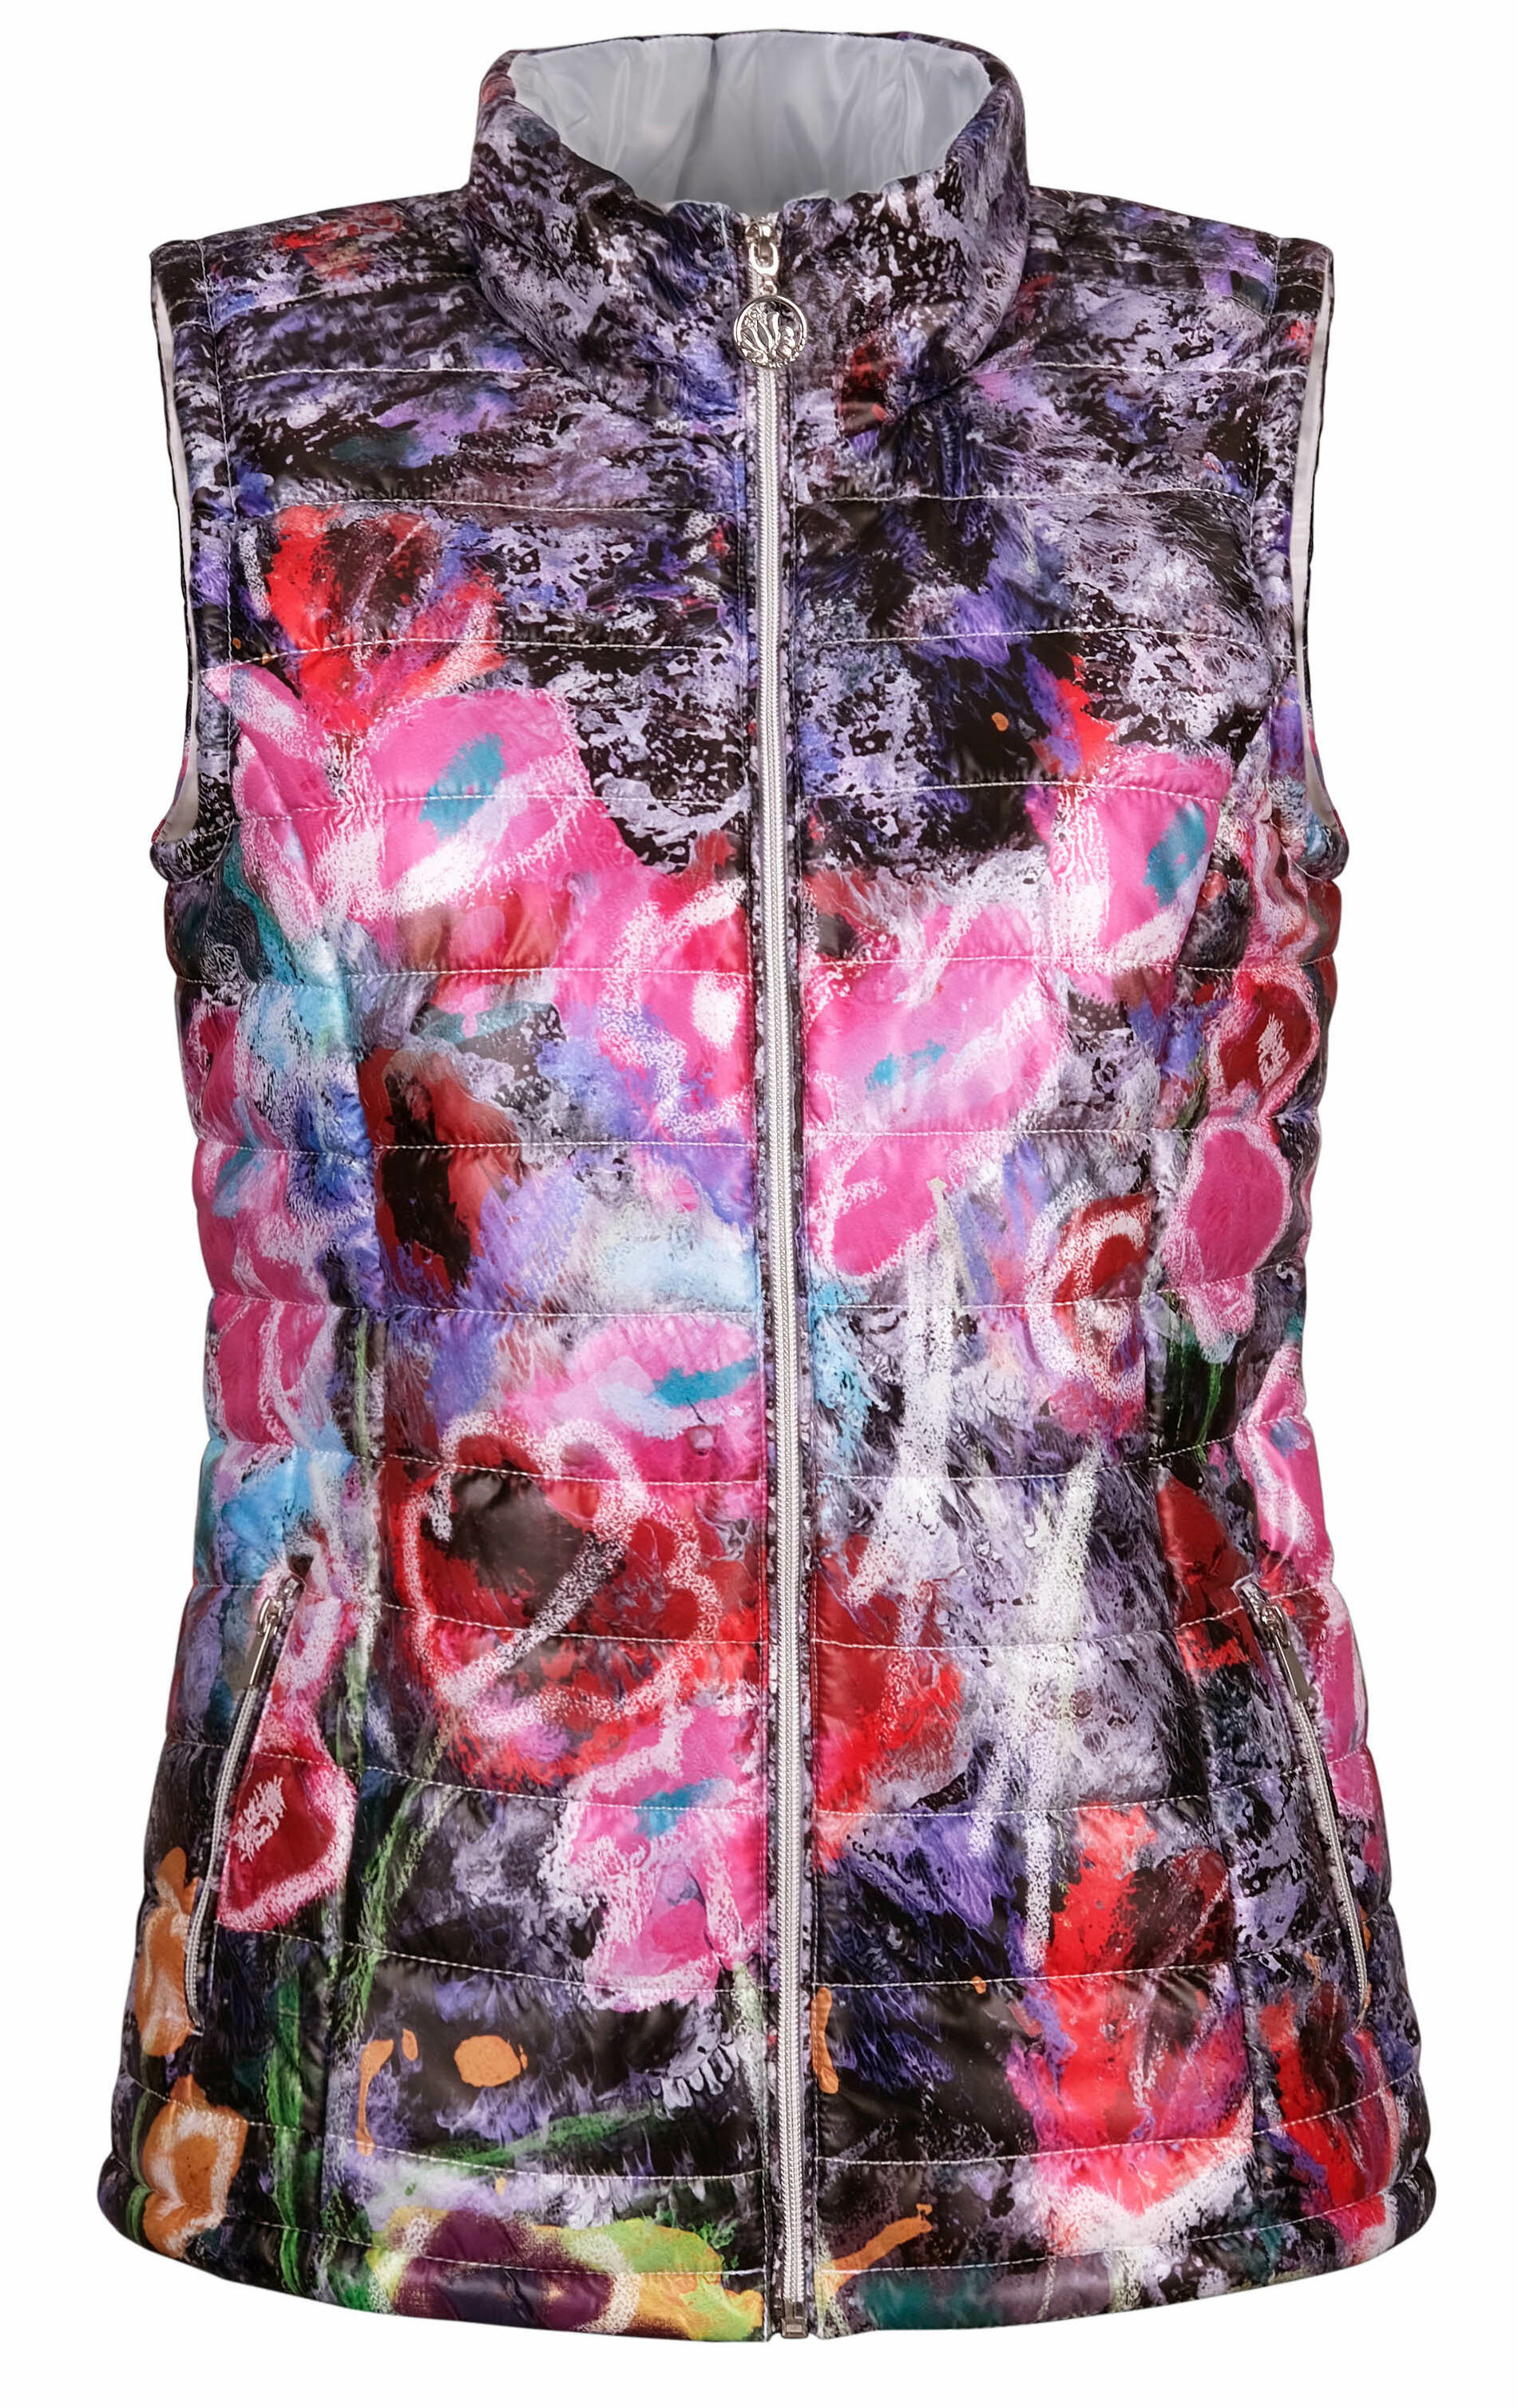 Simply Art Dolcezza: Wildest Flowers Abstract Art Puffer Vest DOLCEZZA_SIMPLYART_20800